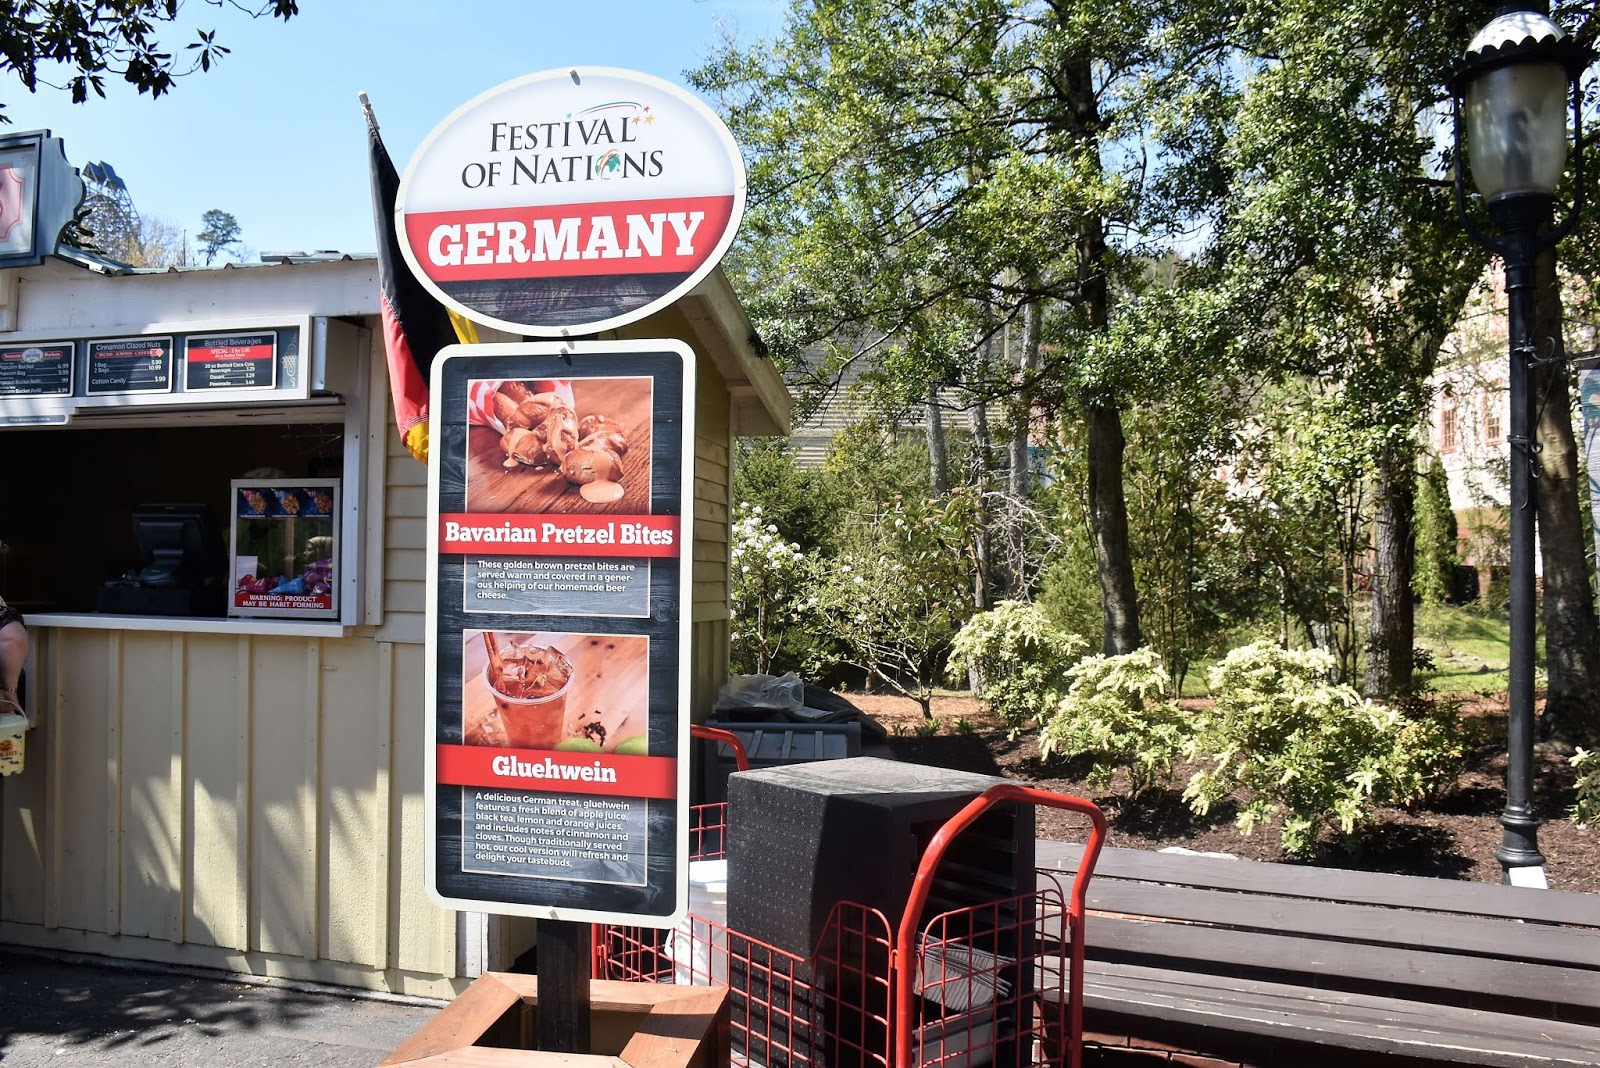 Dollywood's Festival of Nations Germany